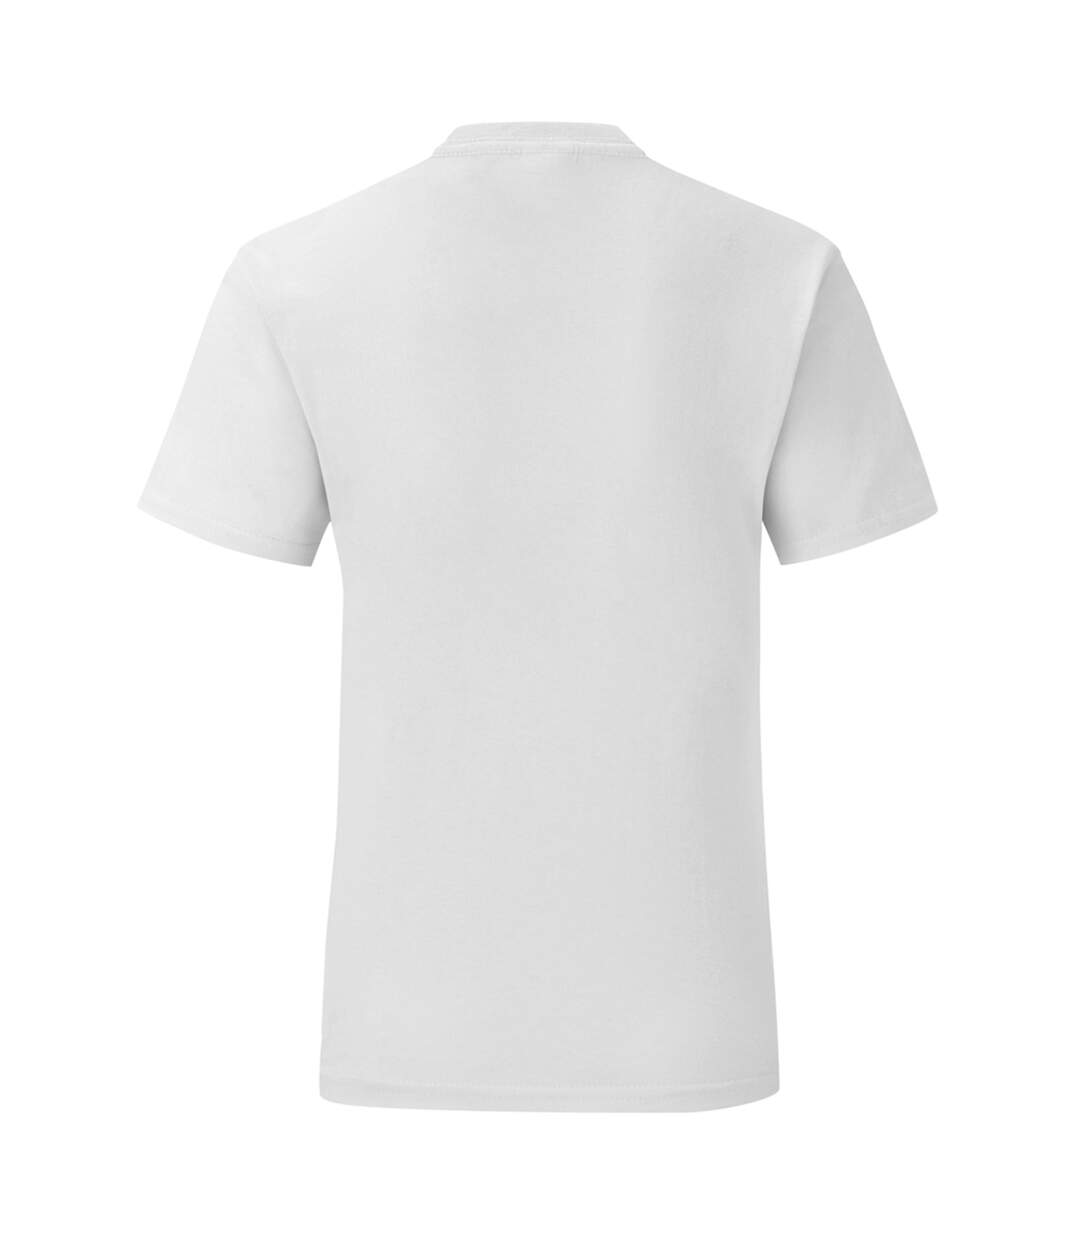 Fruit Of The Loom - T-Shirt Iconic - Homme (Blanc) - UTPC3389